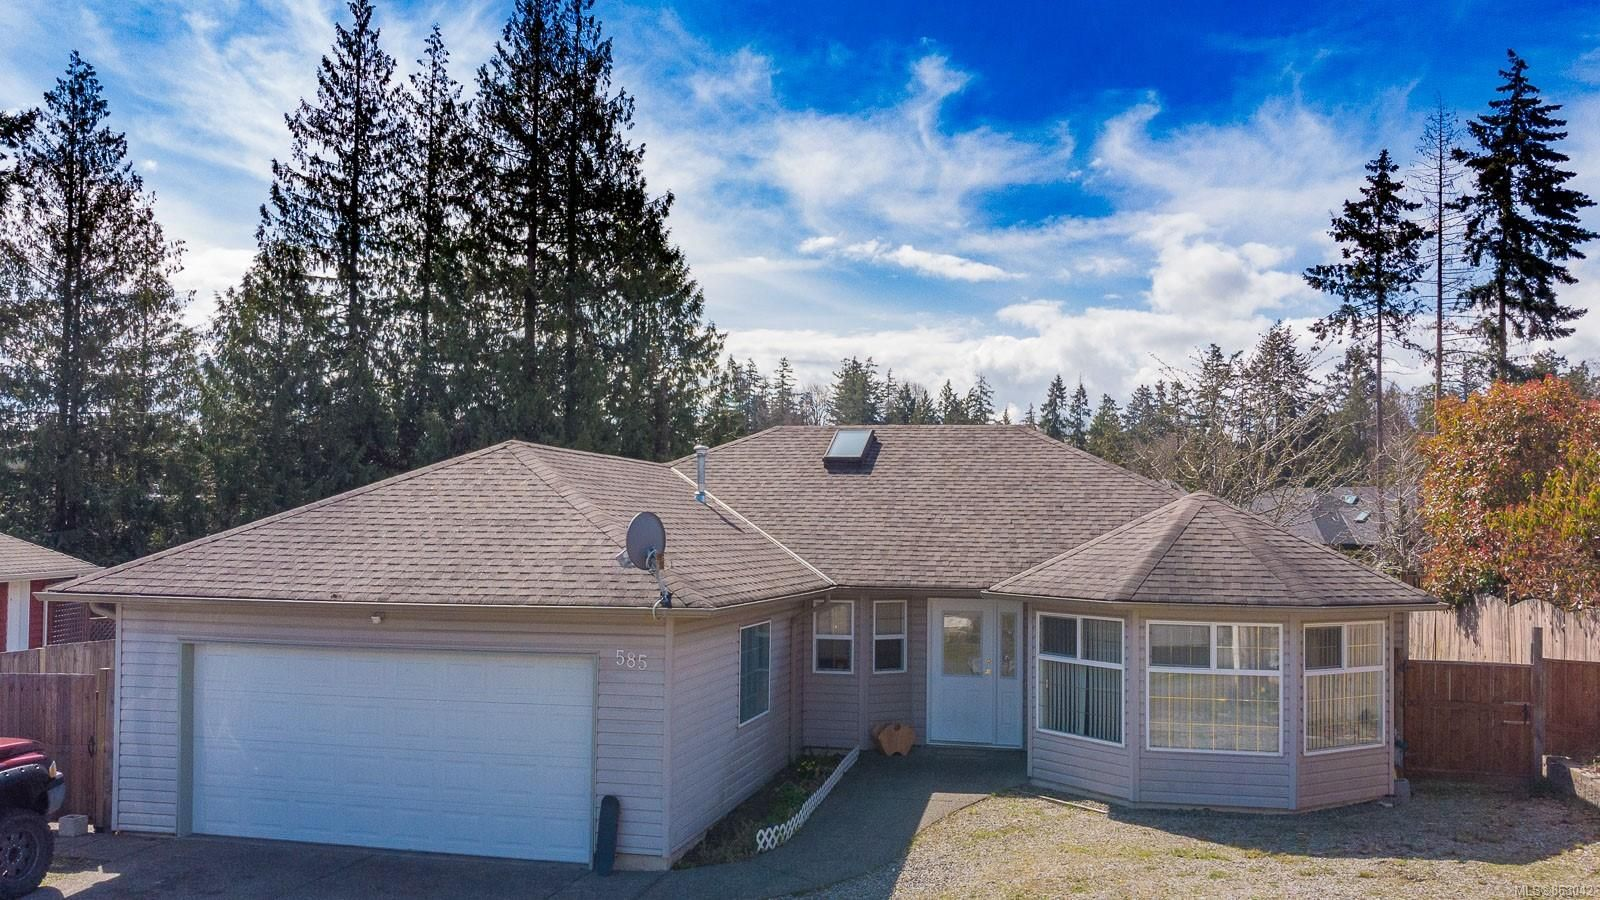 Main Photo: 585 Misner Way in : PQ French Creek House for sale (Parksville/Qualicum)  : MLS®# 863042